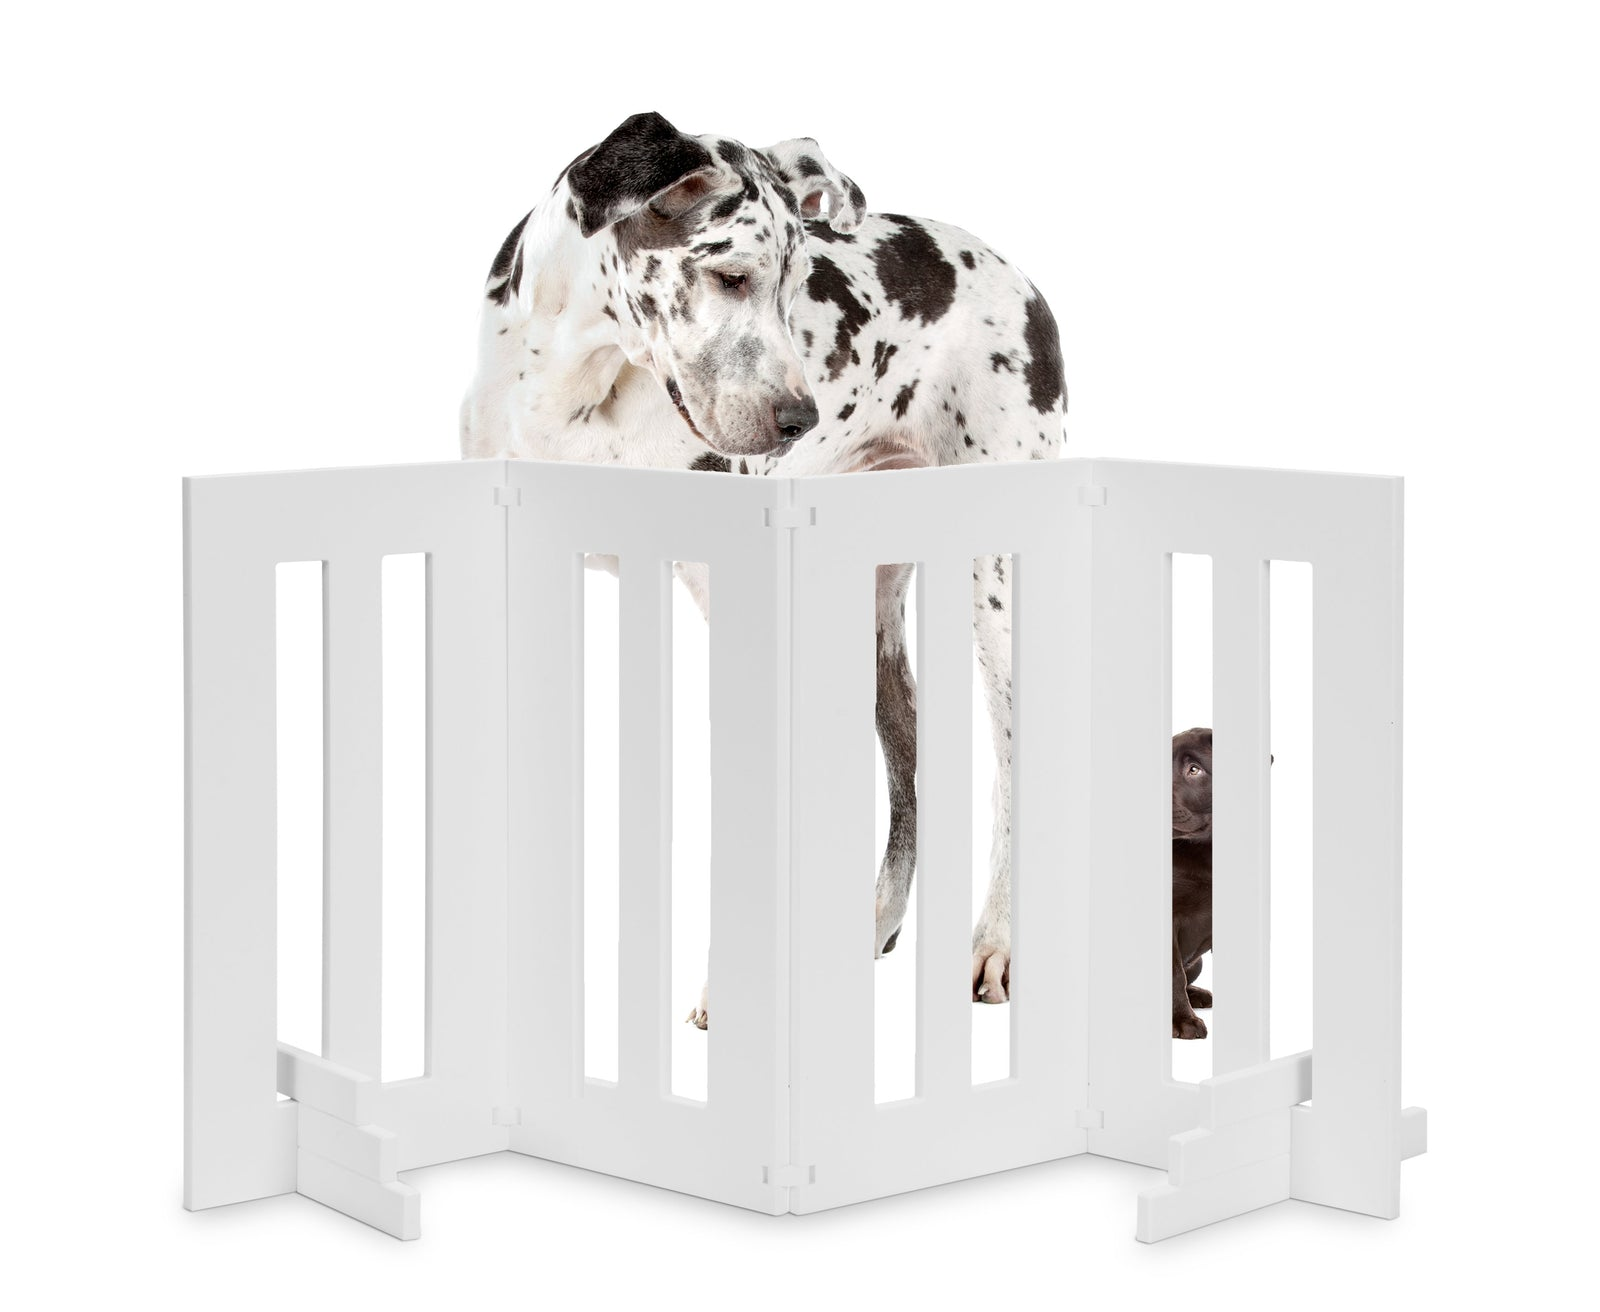 Backyard Outdoor Dog Gate